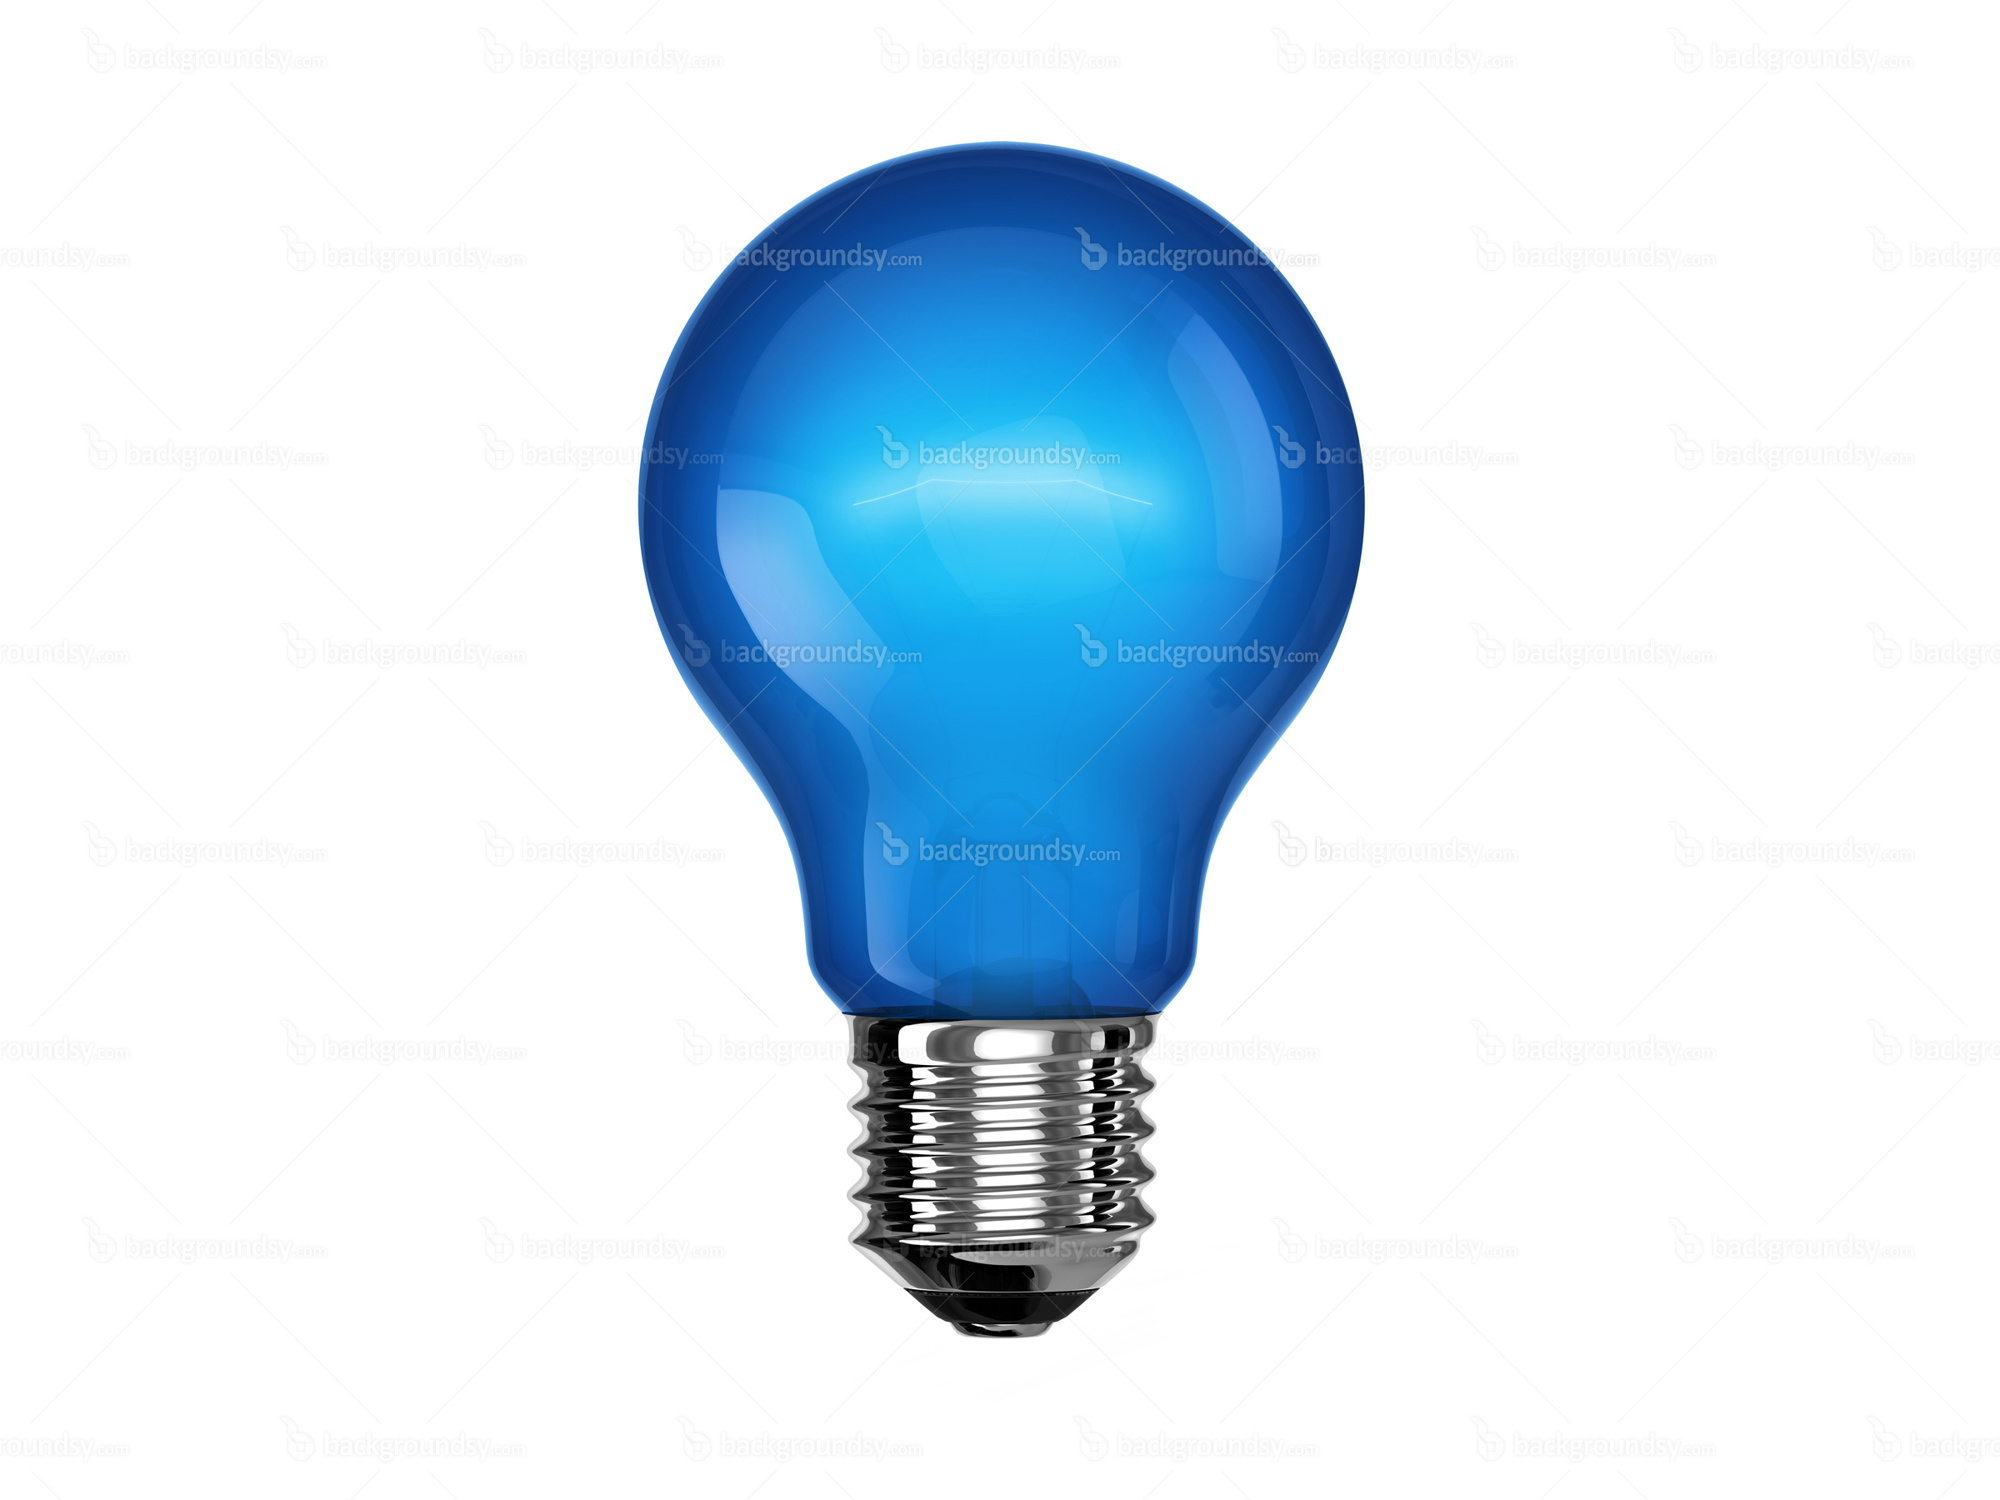 Blue light bulb A light bulb